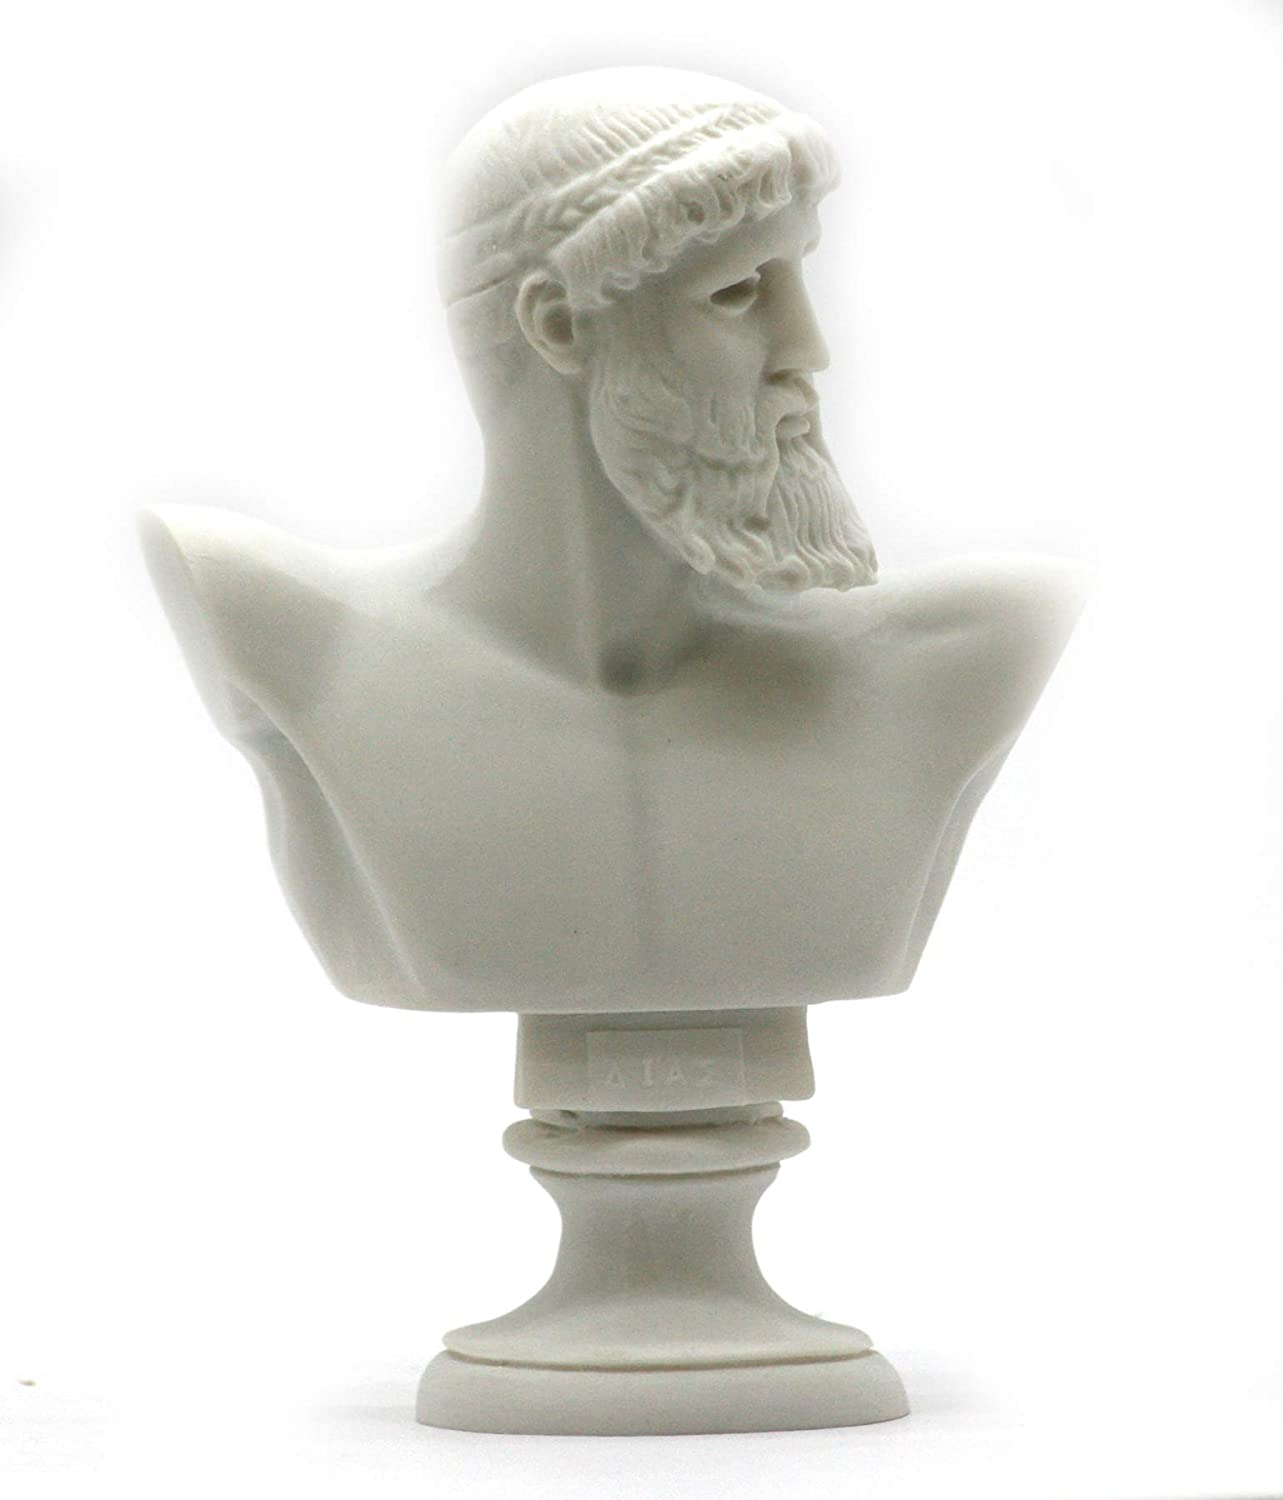 Sconosciuto Greek Roman King God Zeus Busto Testa alabastro Statua Scultura 6.3  ΄ ΄ λ κ 3/24